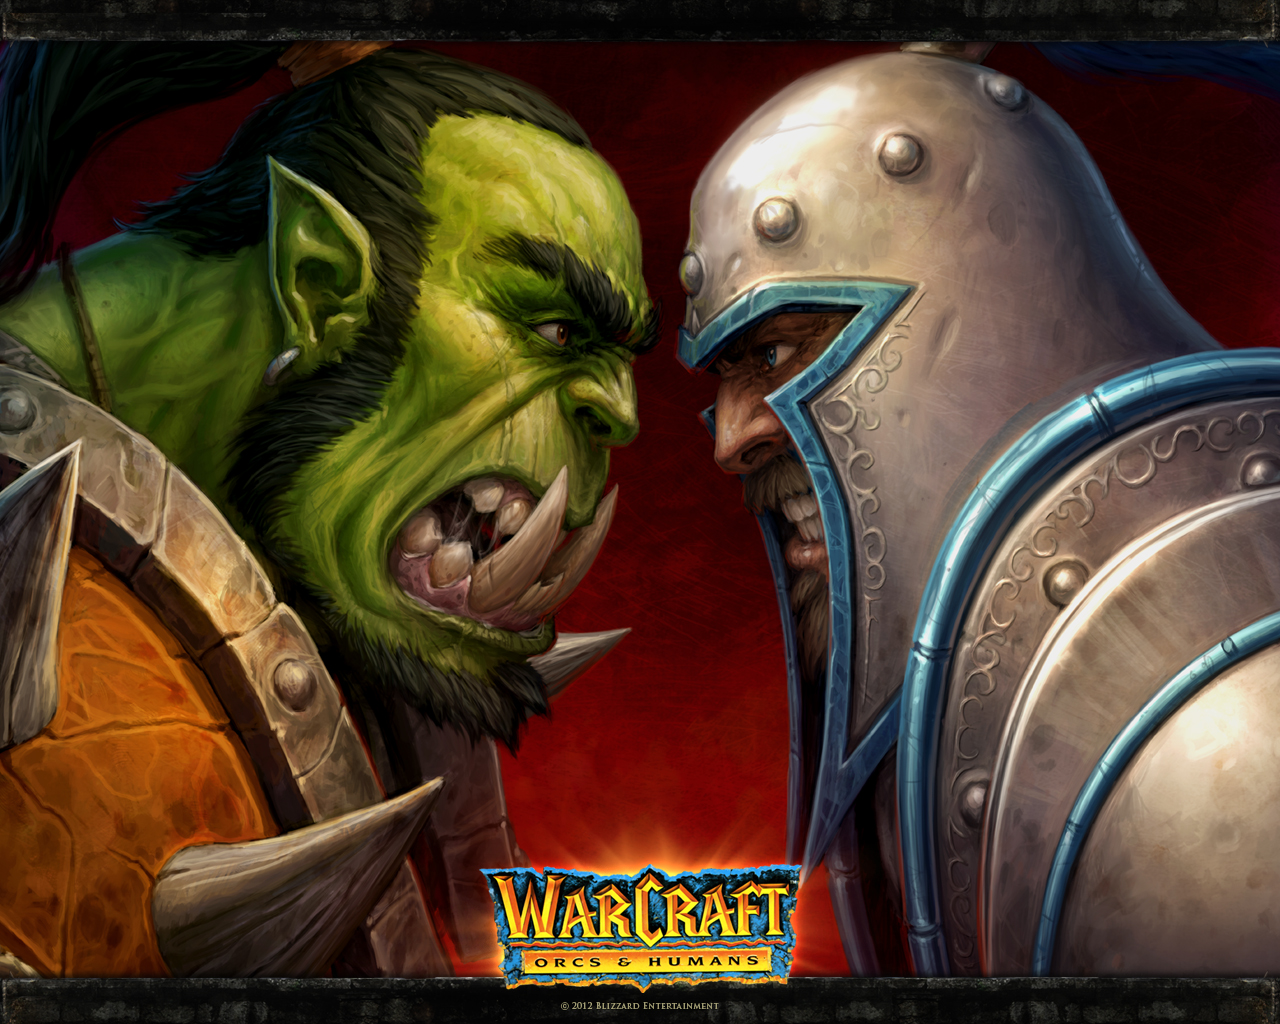 story-of-wow-warcraft1-1280x1024.jpg